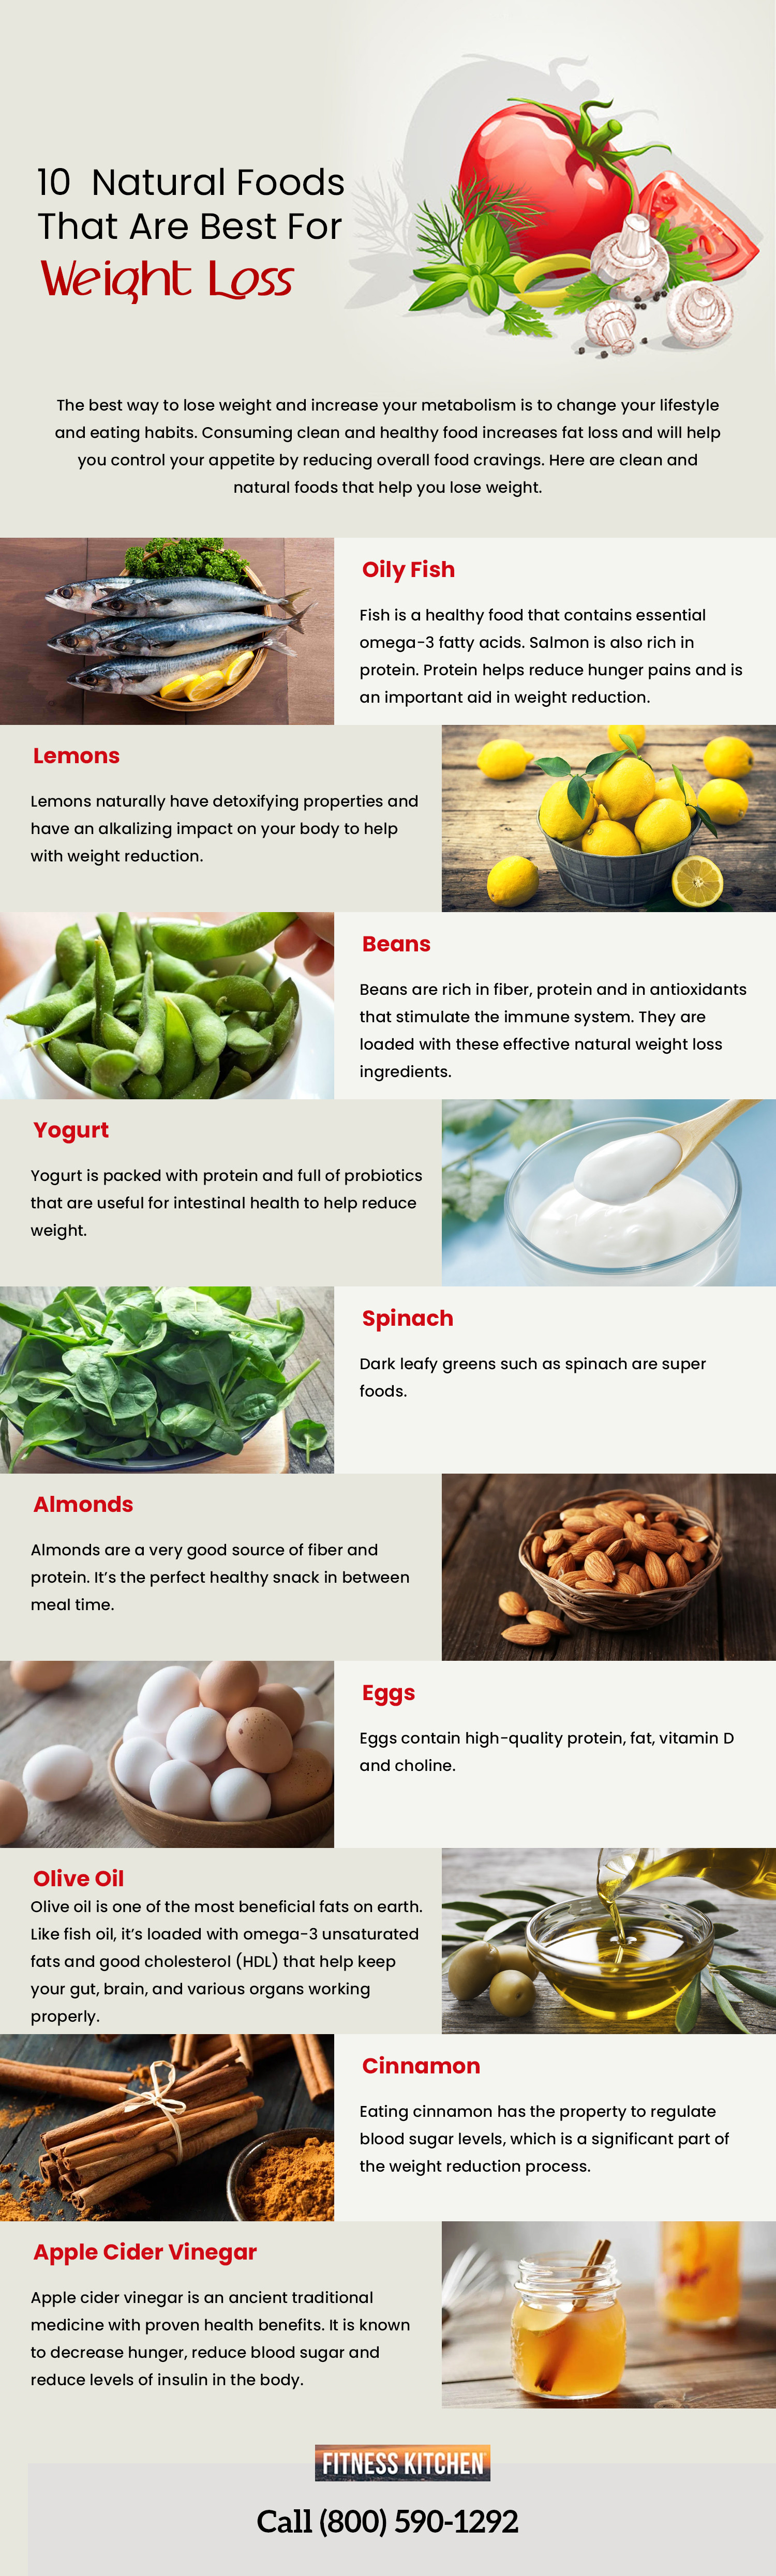 10 Natural Food that are Best for Weight Loss Infographic